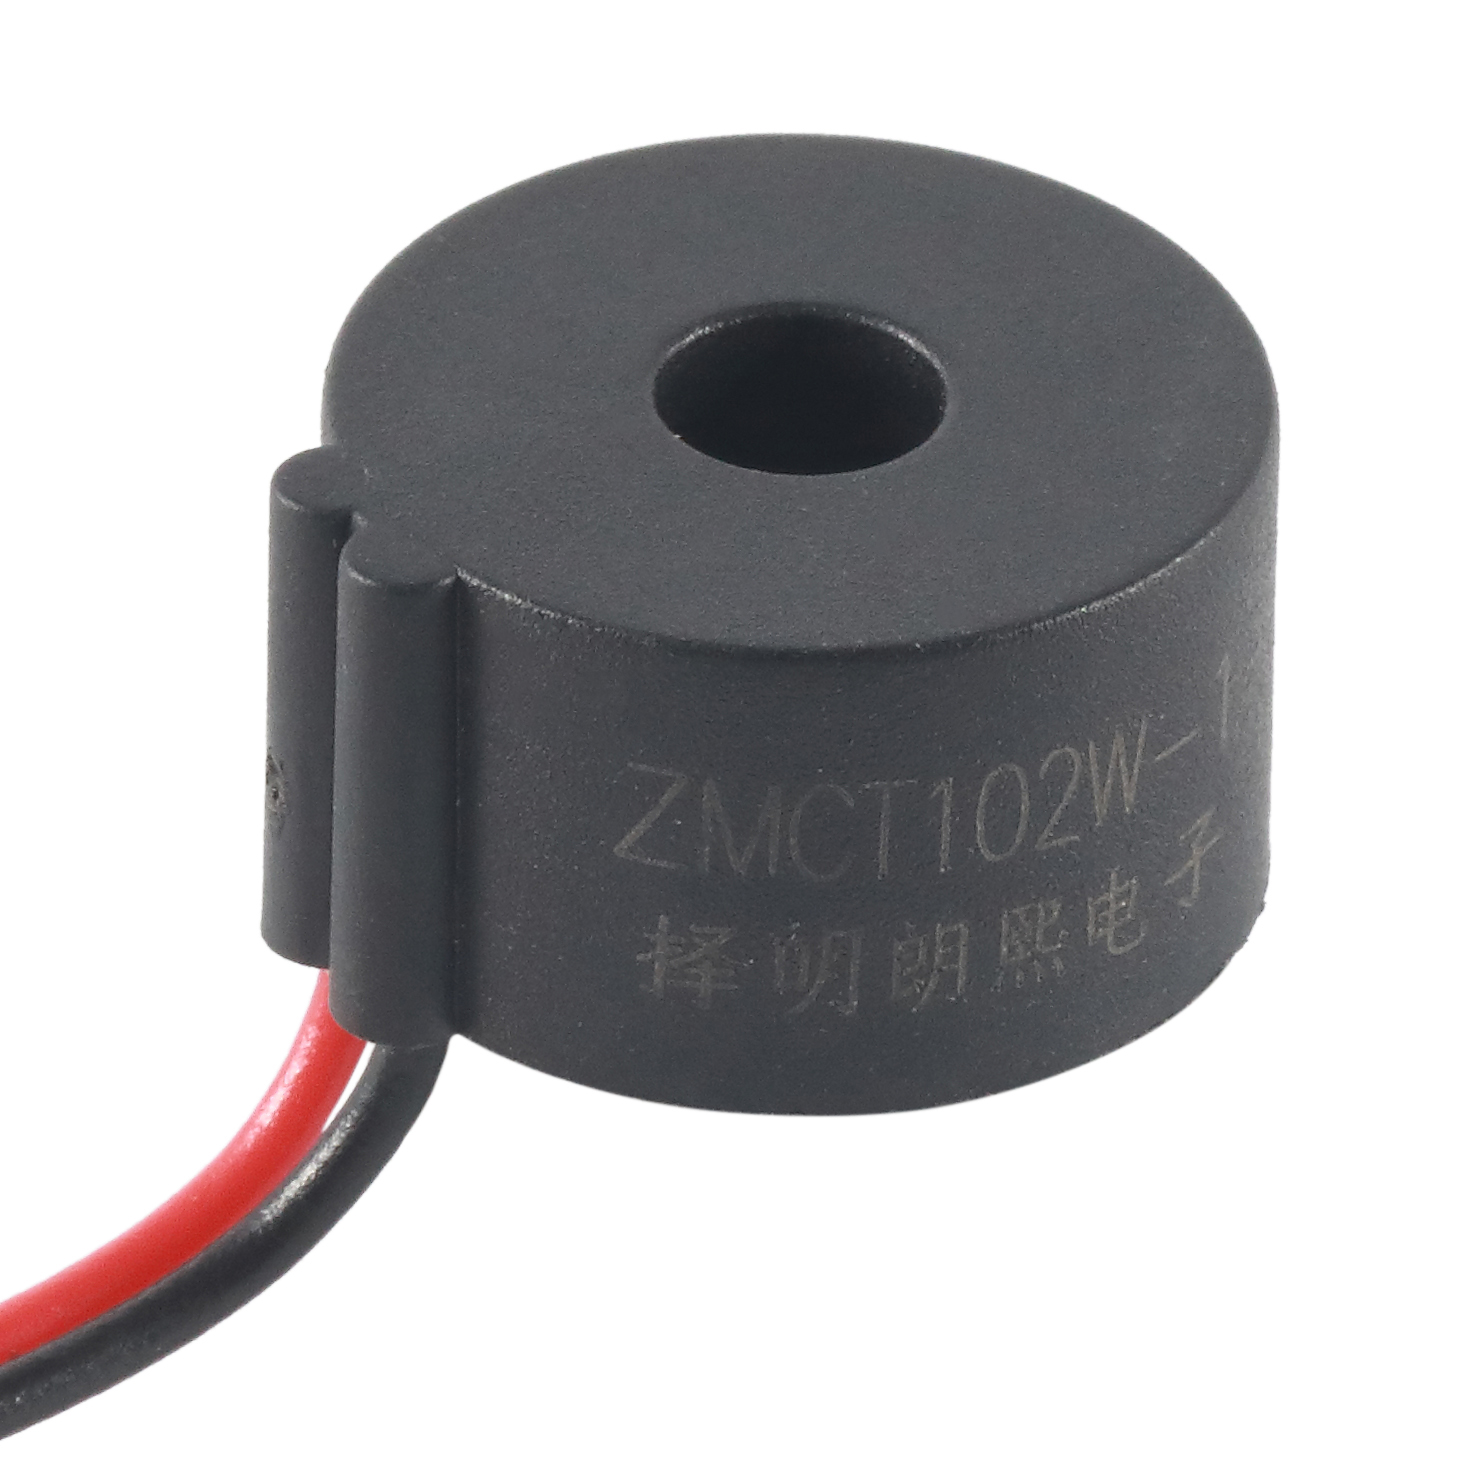 φ5mm flying wires current transformer 0.1class